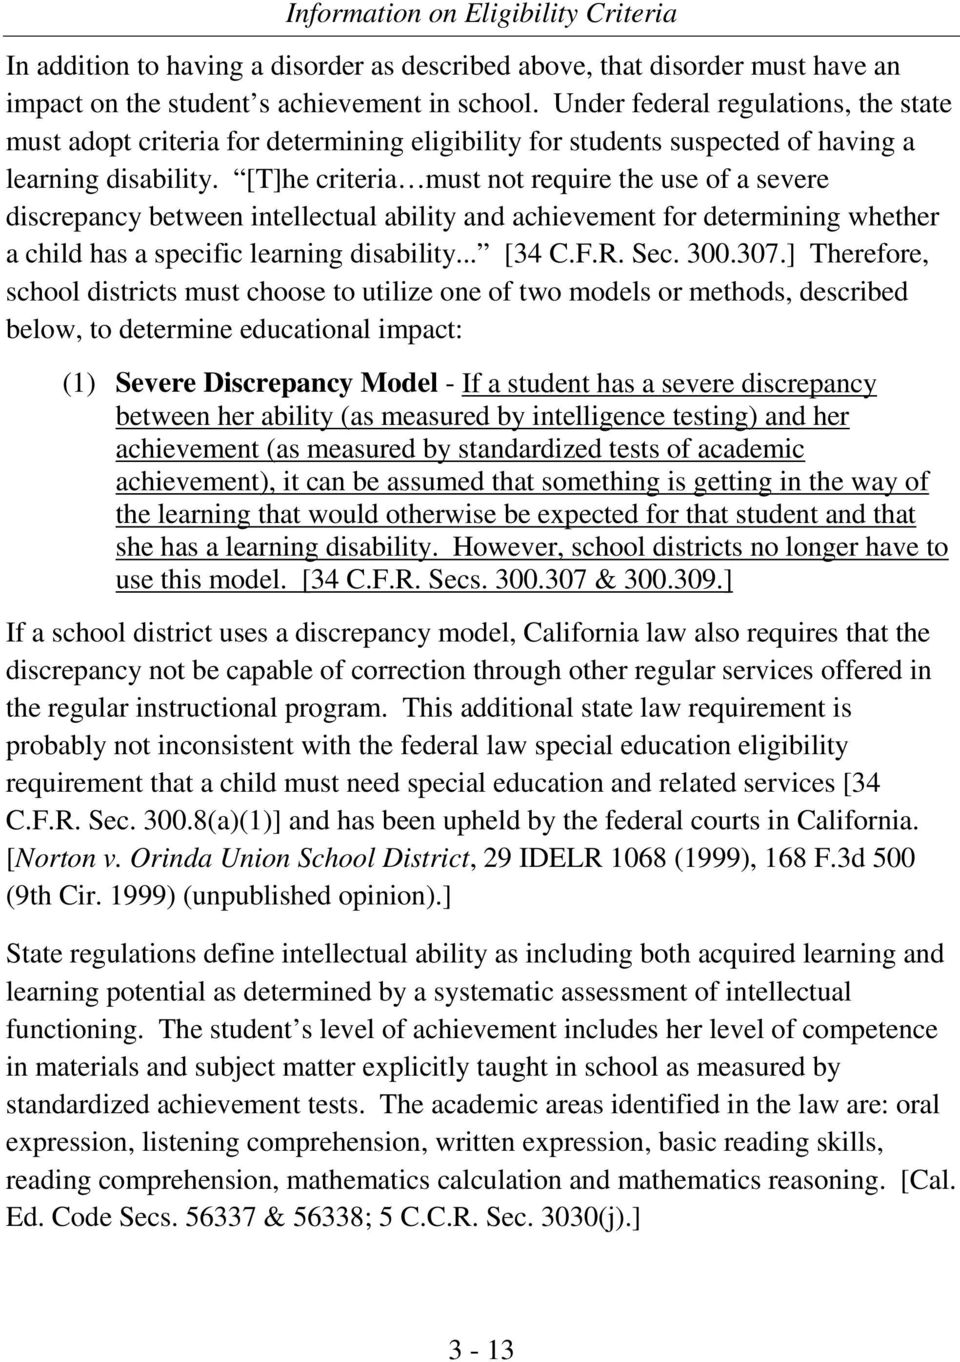 [T]he criteria must not require the use of a severe discrepancy between intellectual ability and achievement for determining whether a child has a specific learning disability... [34 C.F.R. Sec. 300.